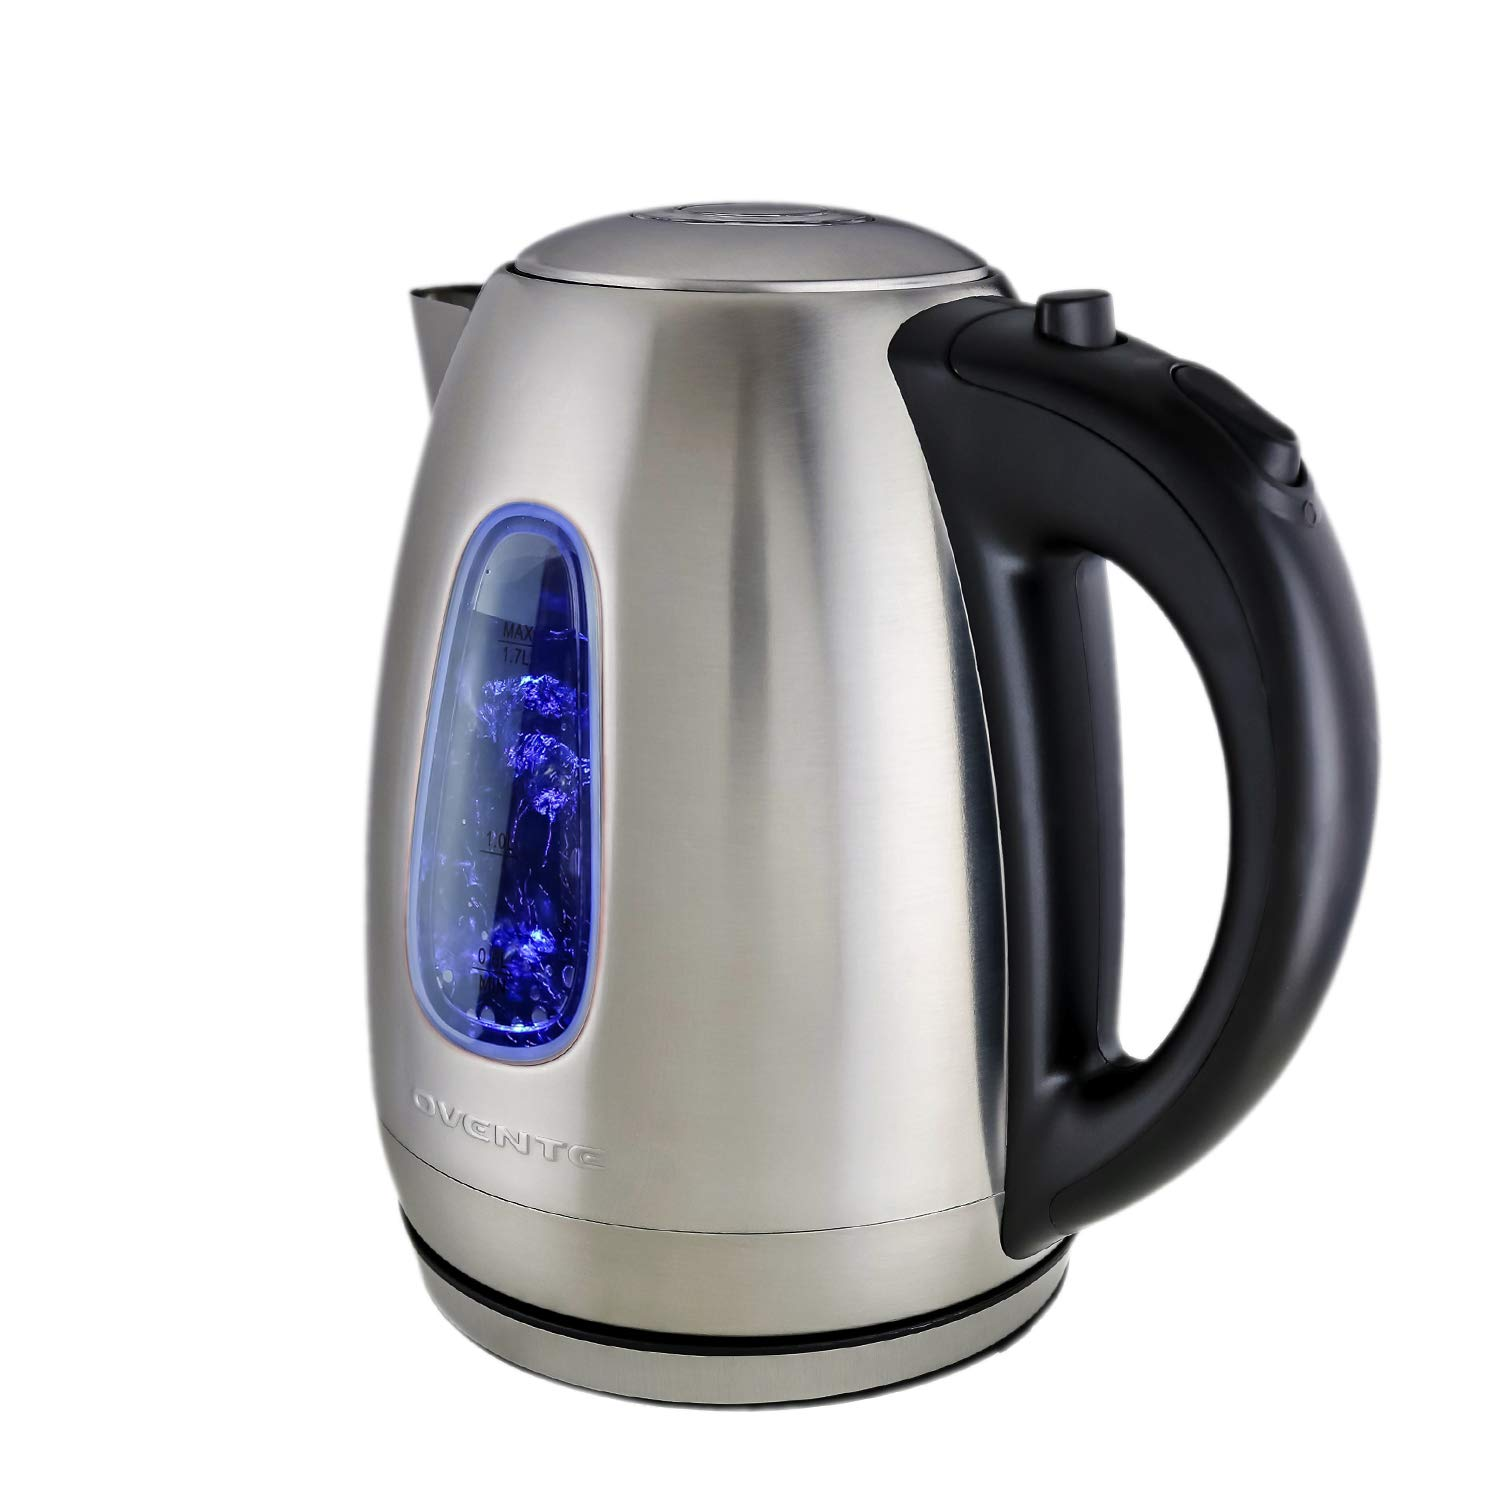 Ovente Electric Kettle, Cordless Tea and Water Heater, Automatic Shut-Off & Boil-Dry Protection, BPA-Free, Stainless Steel, Concealed Heating Element, 1100W, 1.7L (Silver)